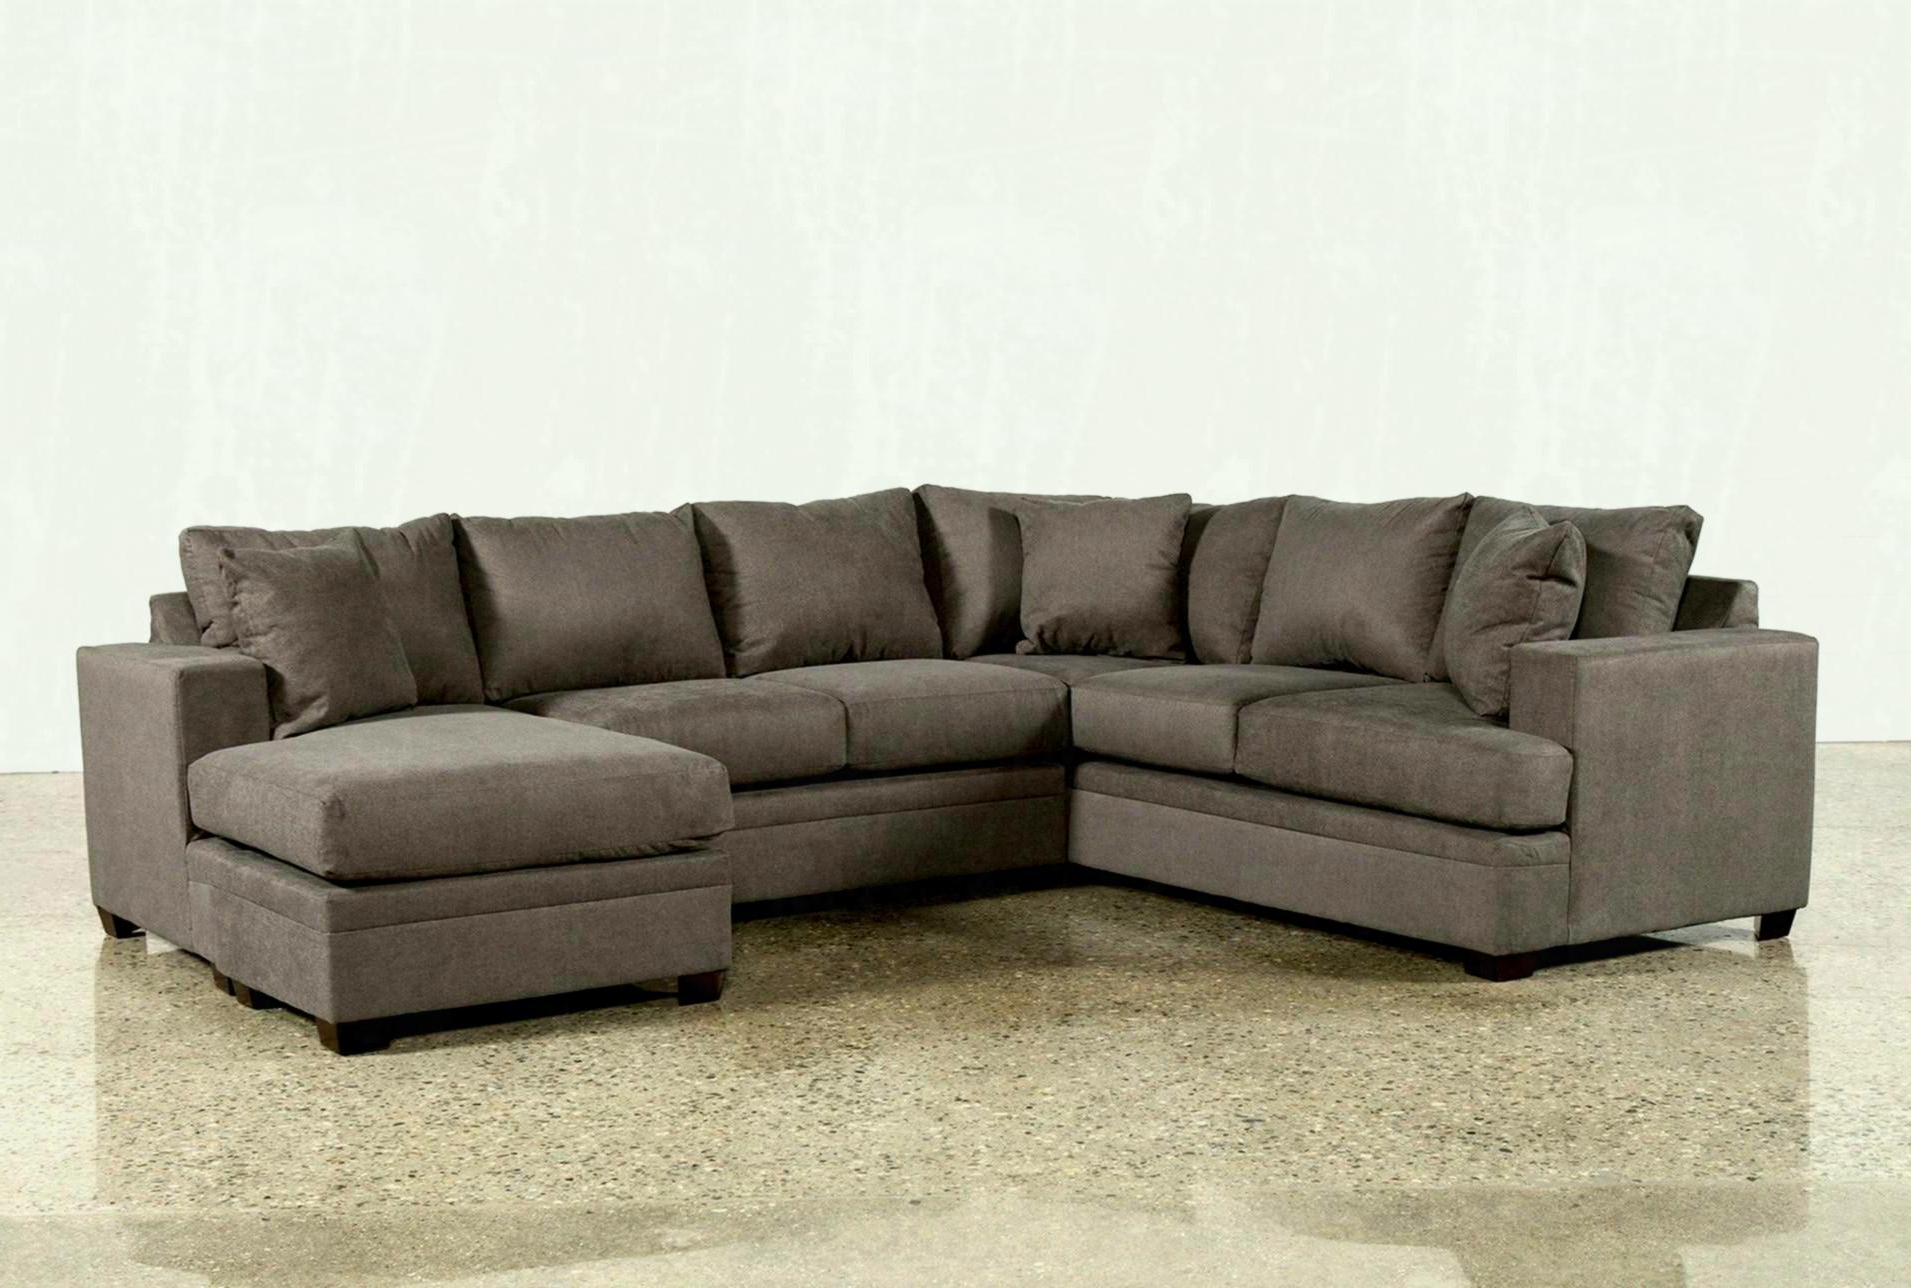 Added To Cart Kerri Piece Sectional W Raf Chaise Living Spaces In Newest Lucy Dark Grey 2 Piece Sectionals With Raf Chaise (Gallery 5 of 20)